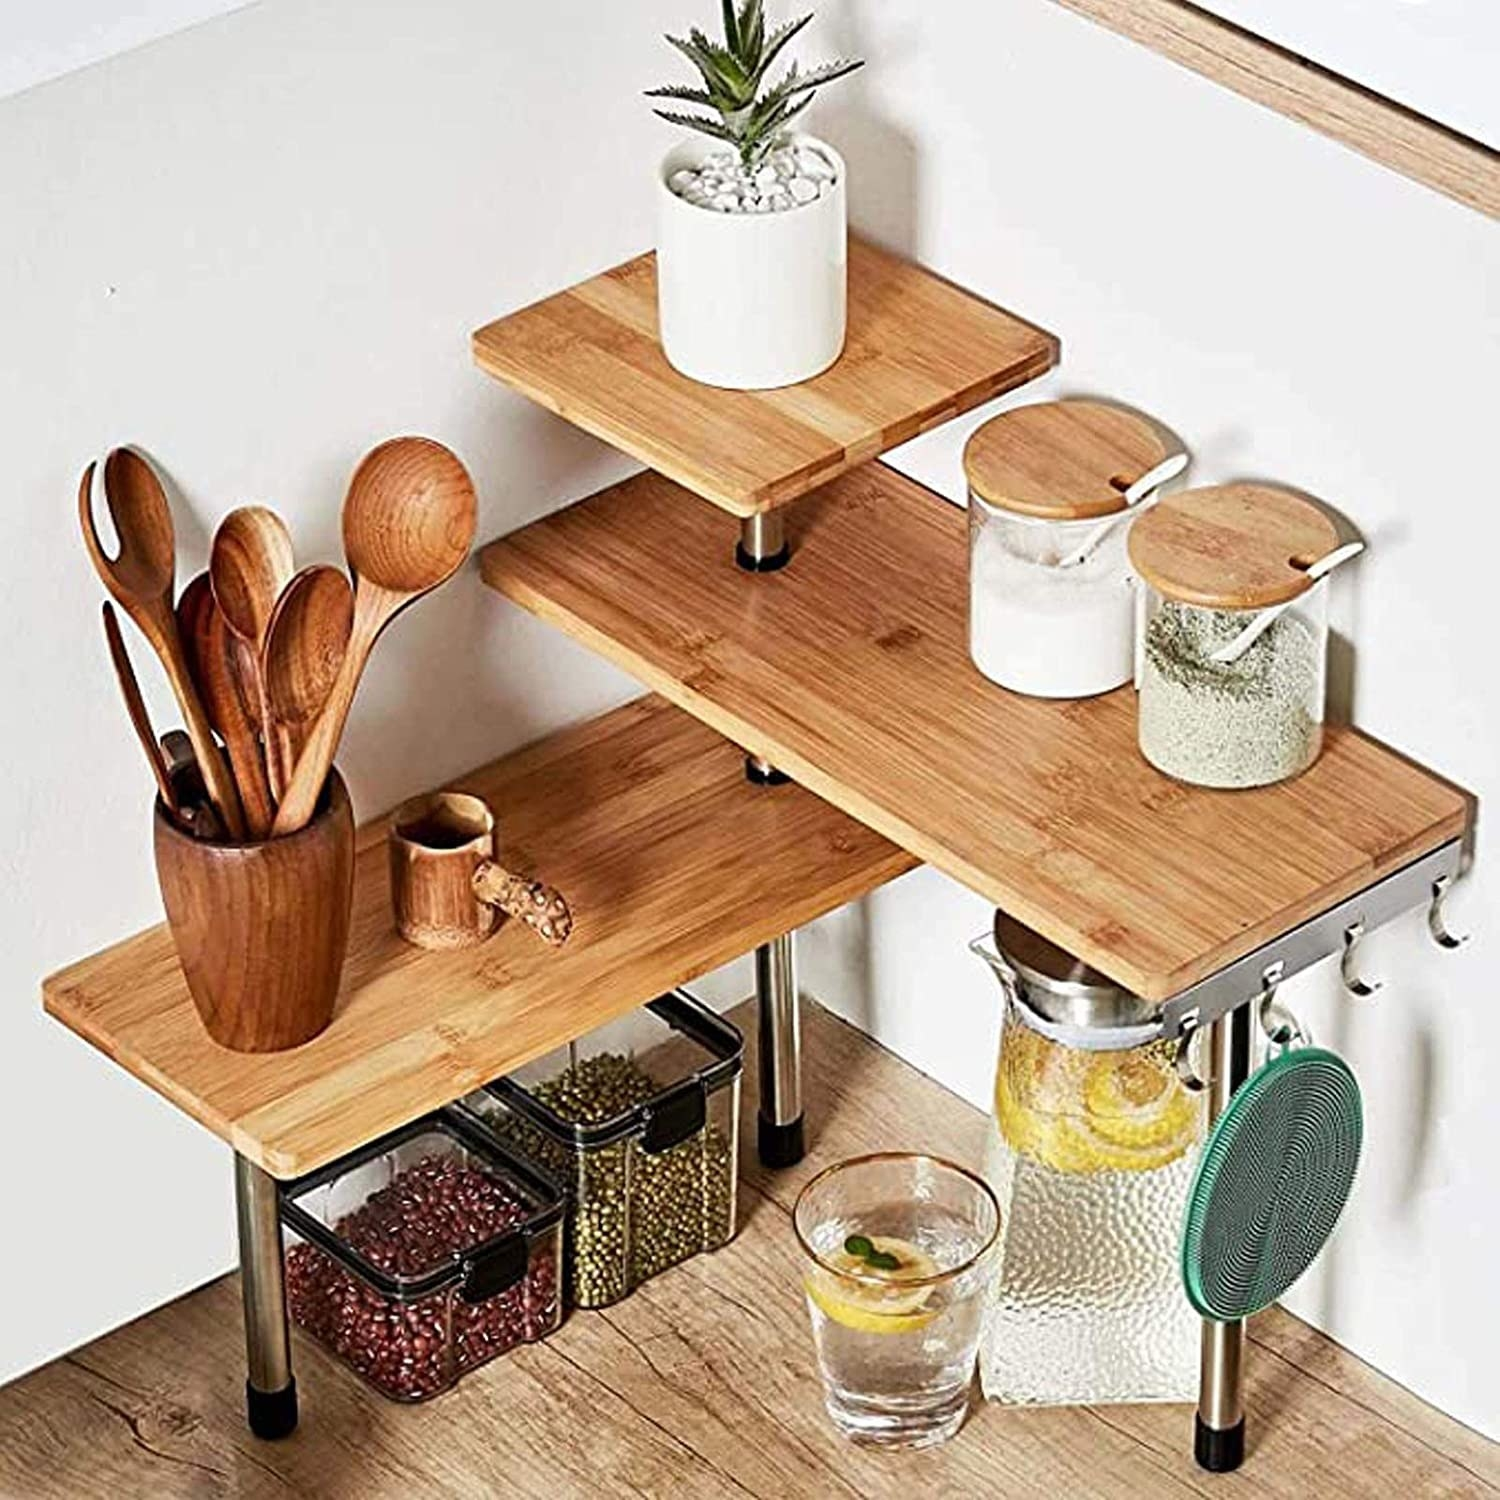 three-tier shelf made with bamboo and metal legs styled on counter